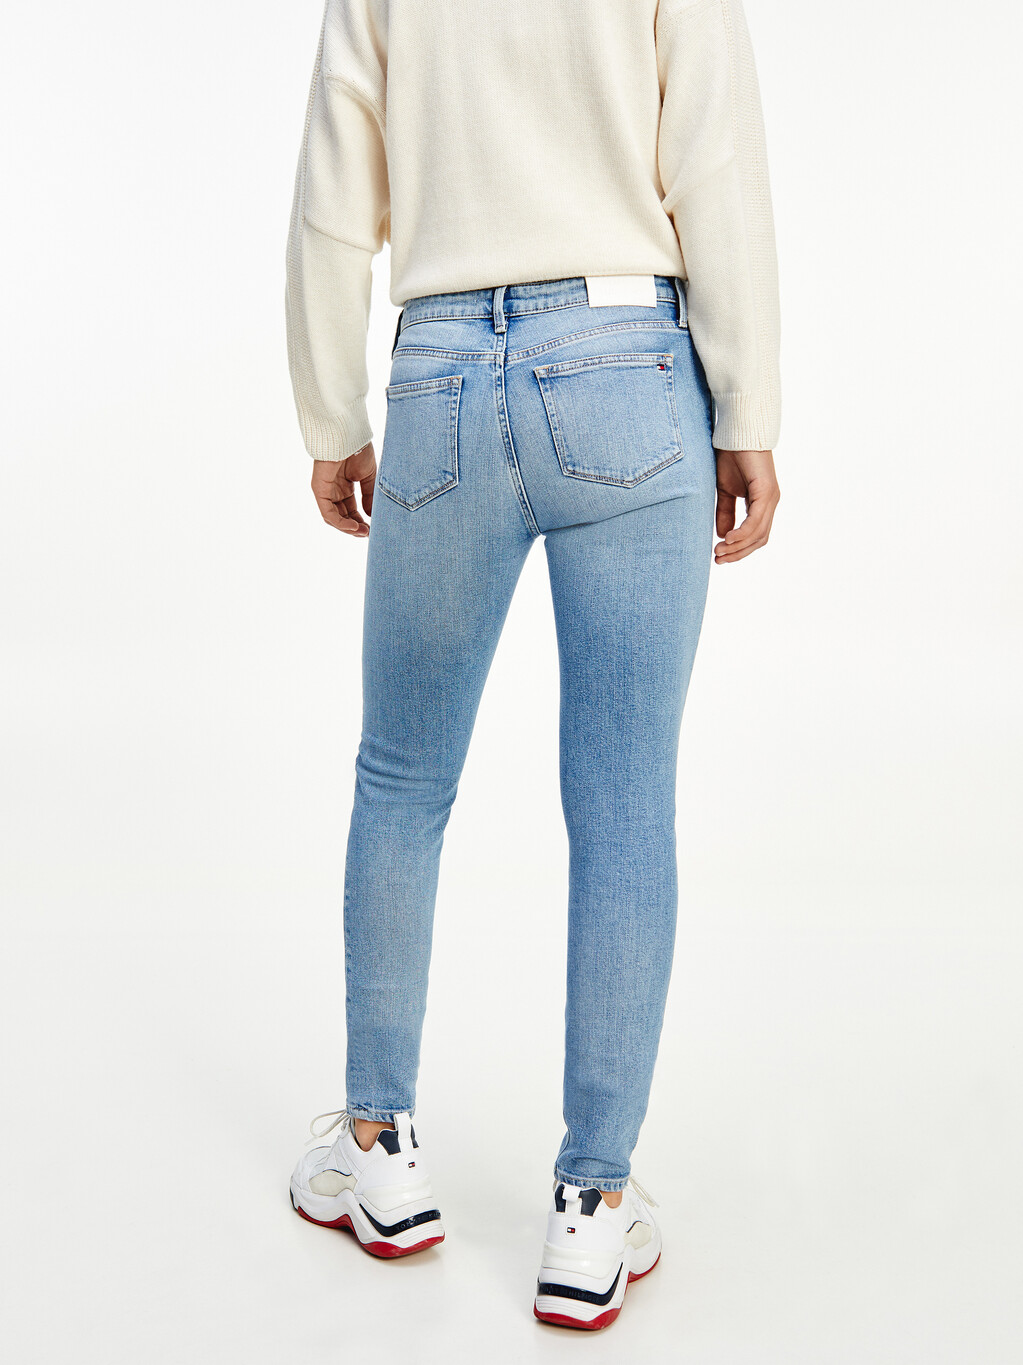 Venice Mid Rise Slim Faded Jeans